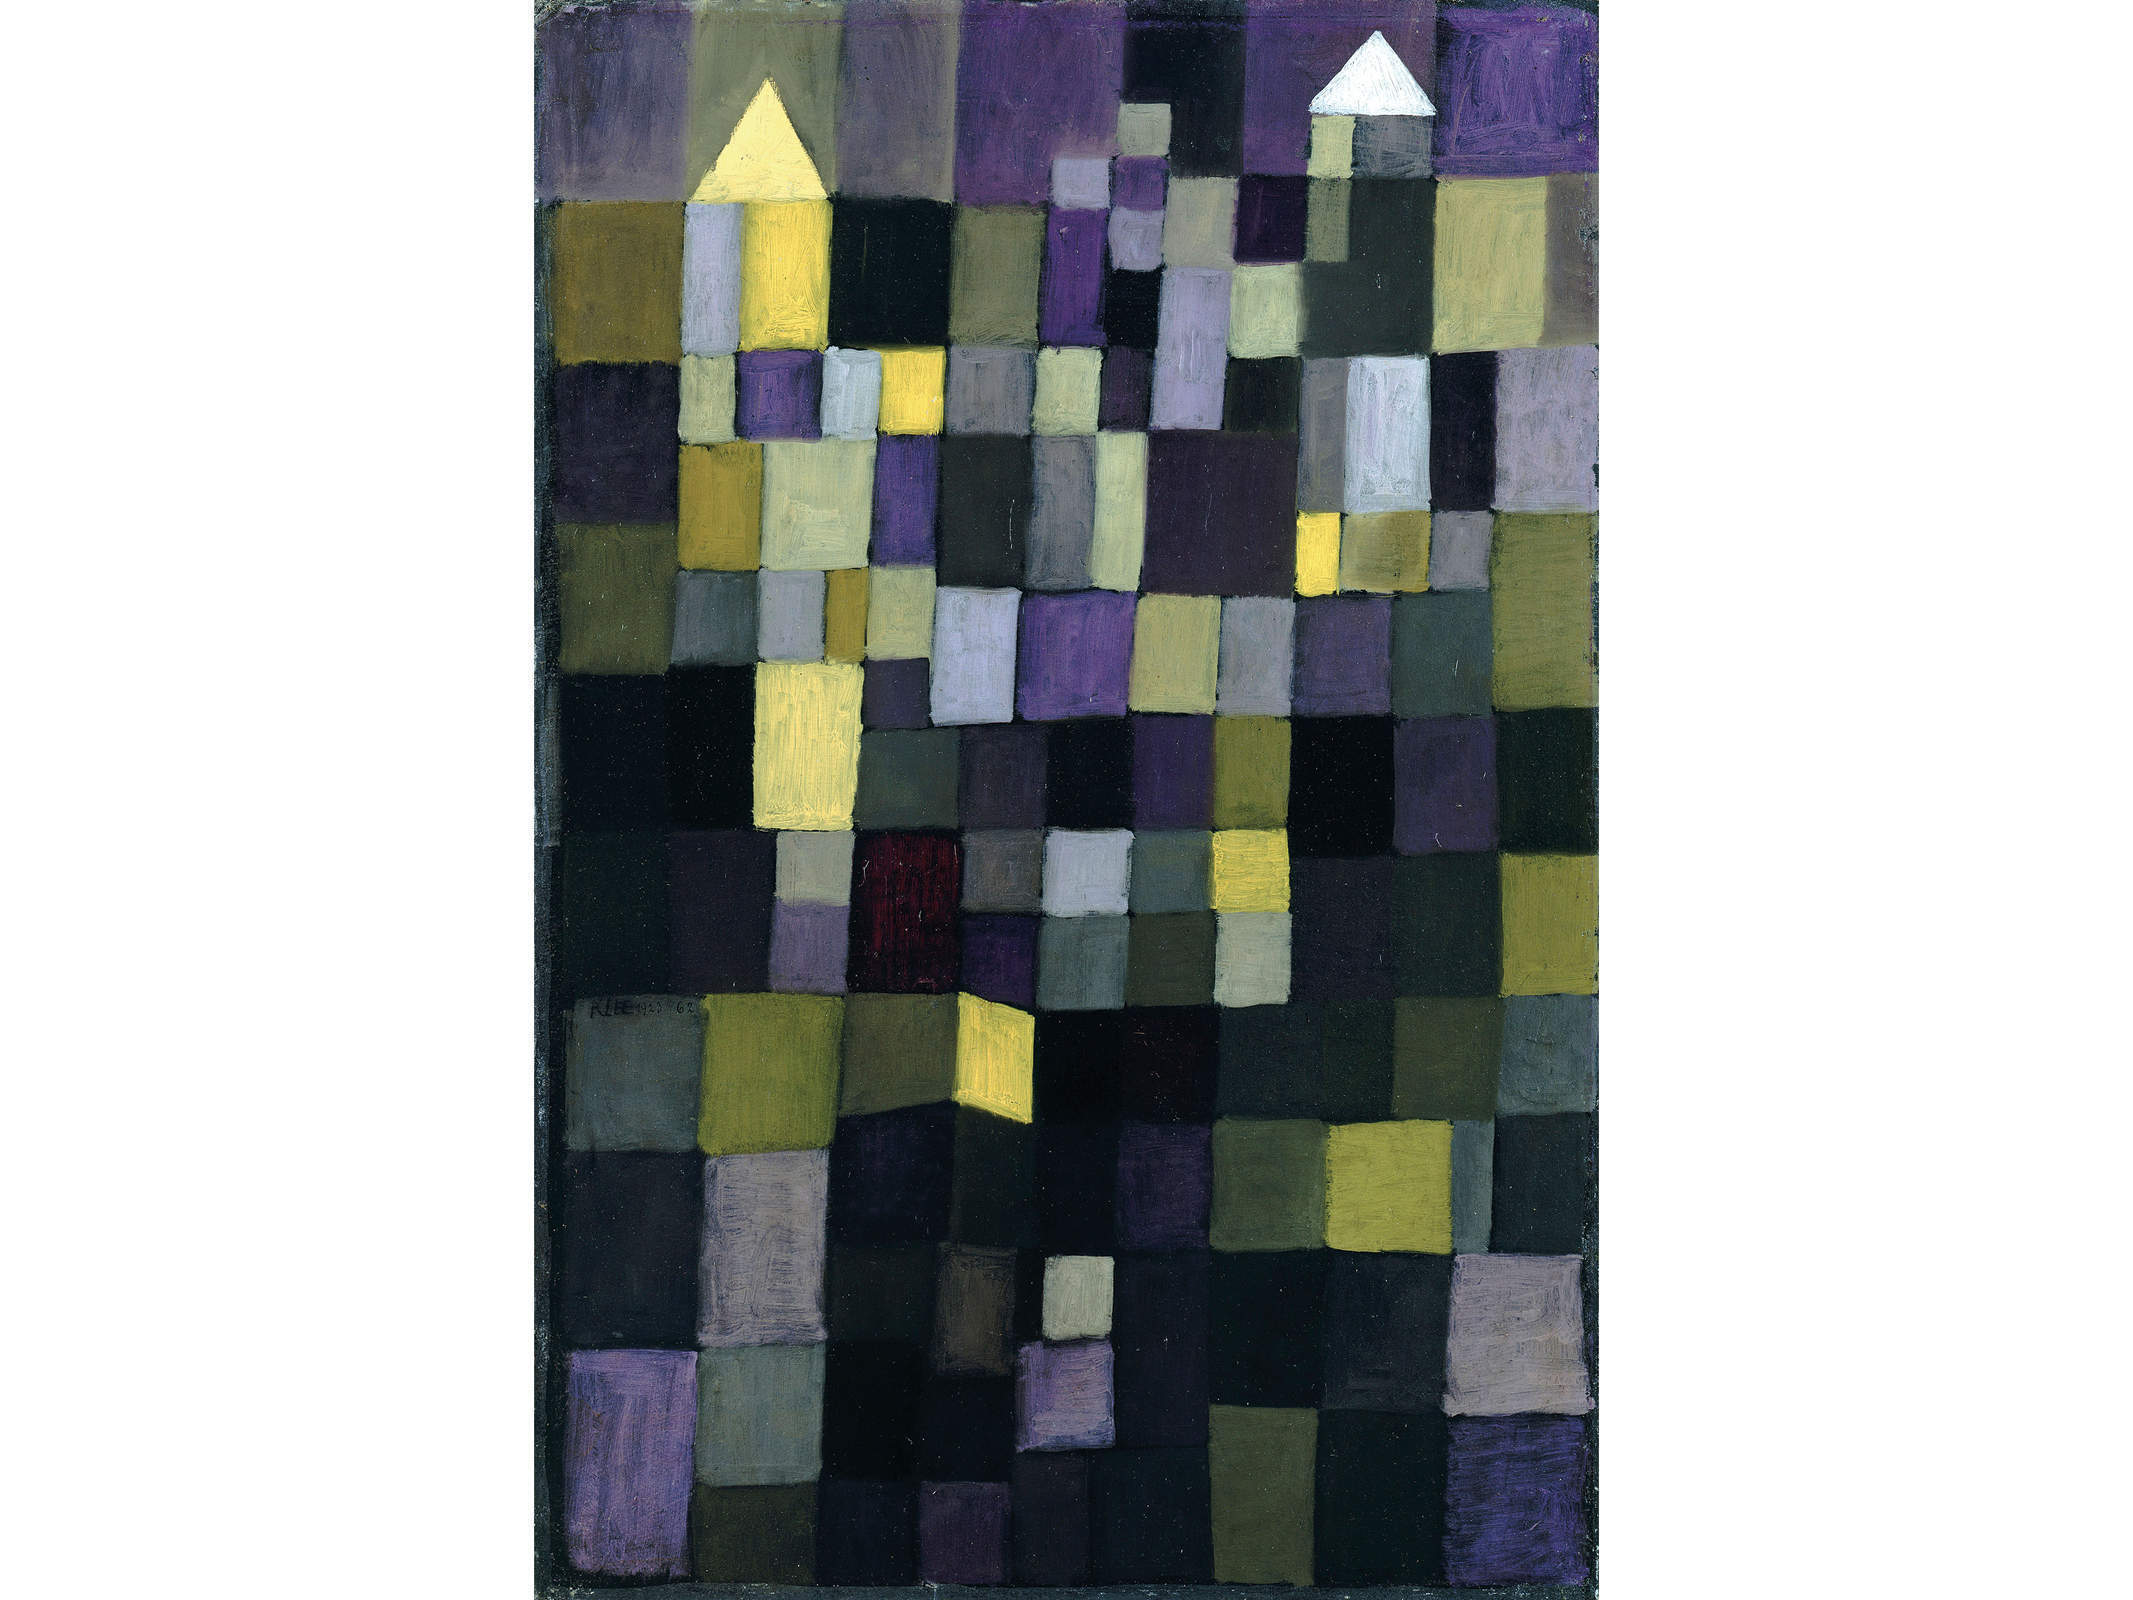 The machinery and magic of Paul Klee's paintings – in close up